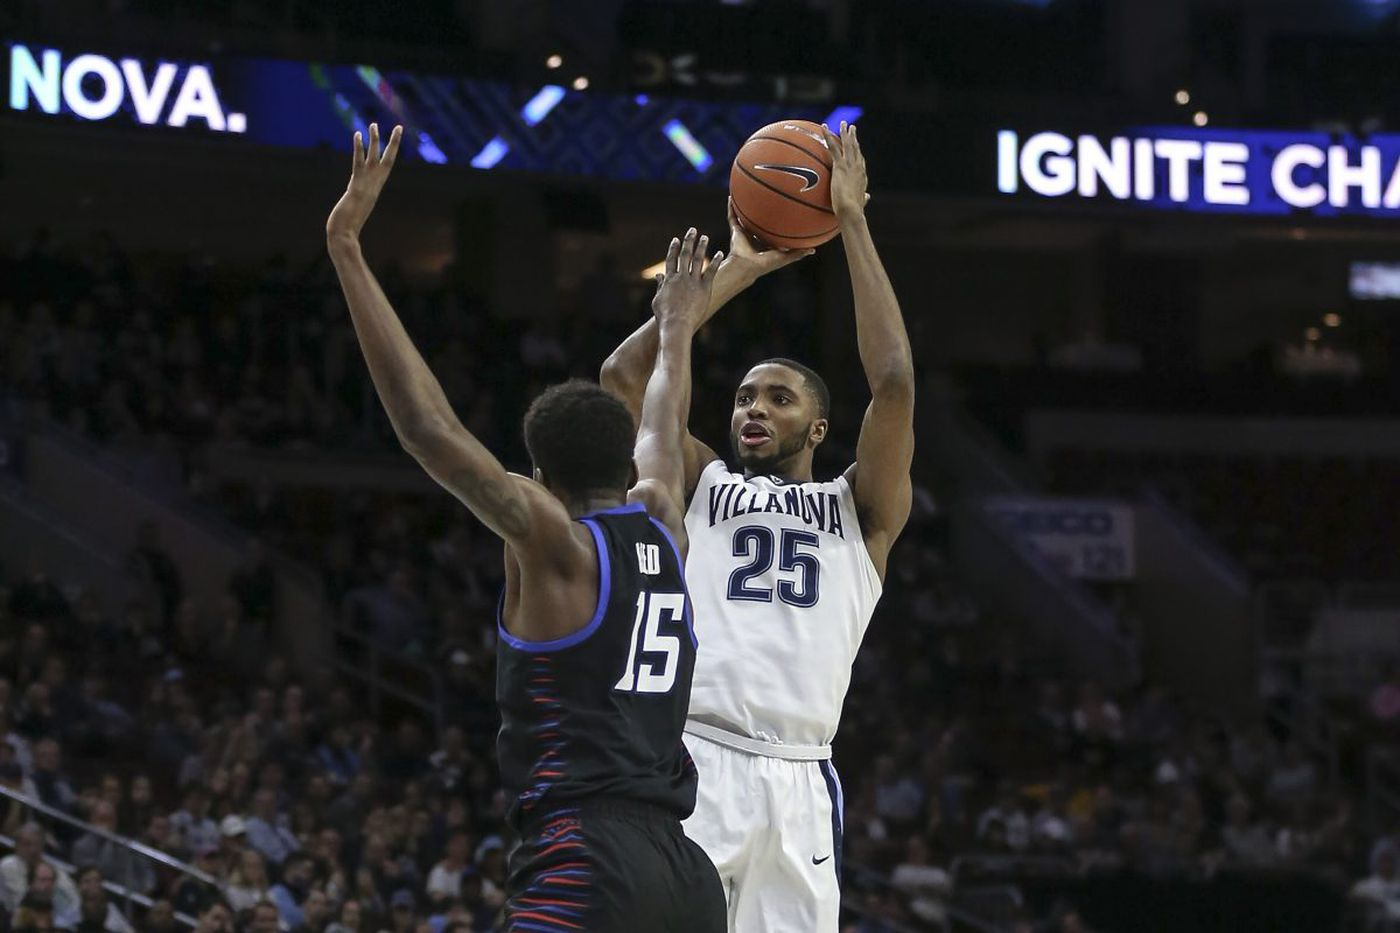 For Villanova's Mikal Bridges, there's more to success than talent